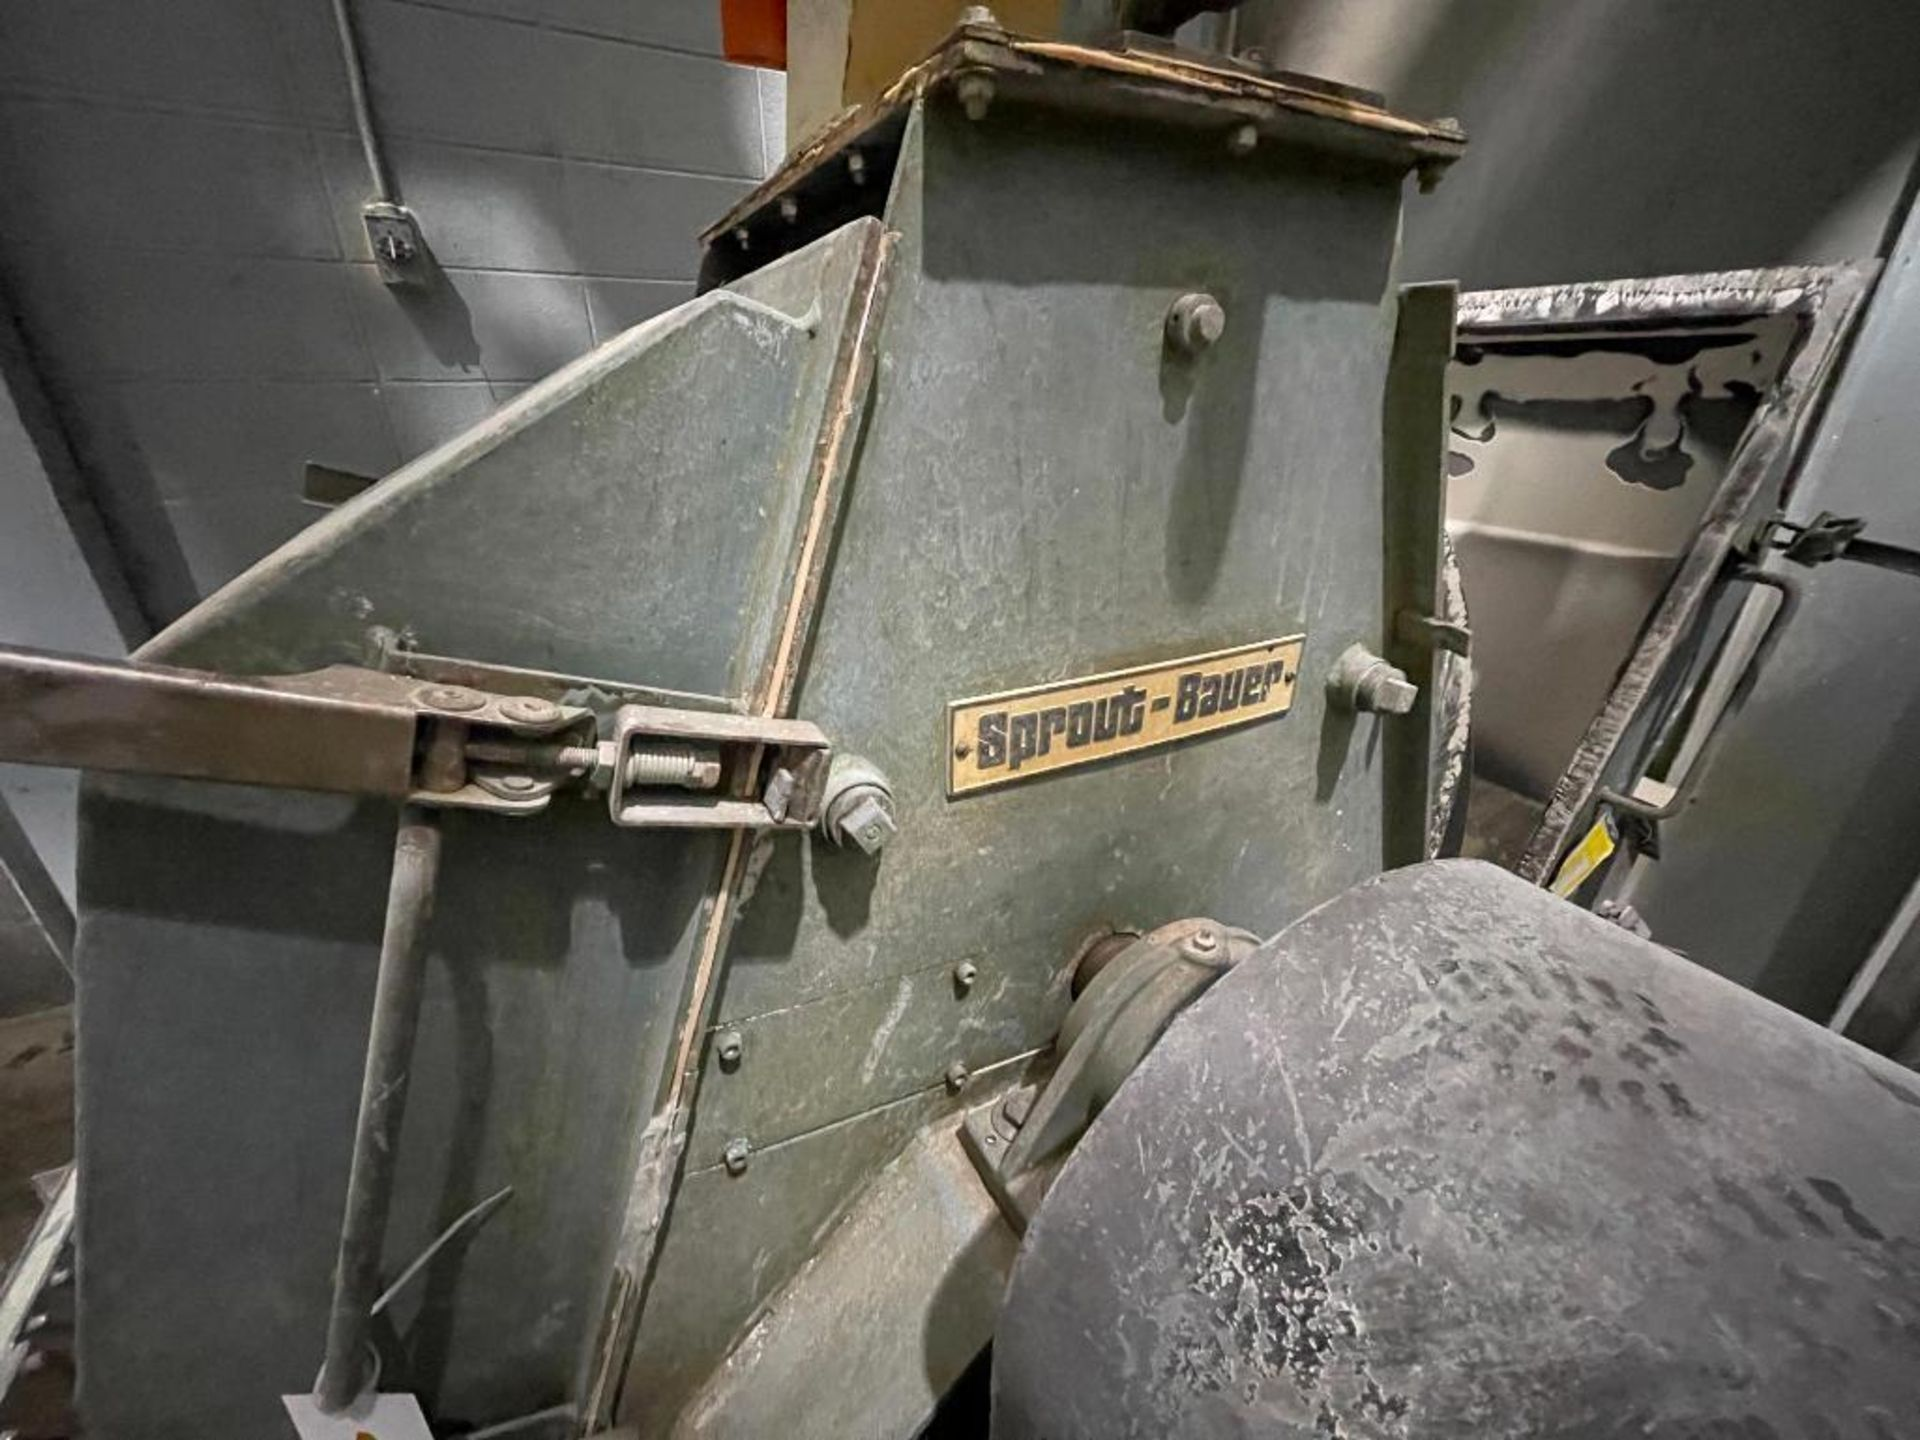 Sprout-Bauer hammermill, 100 hp - Image 2 of 25